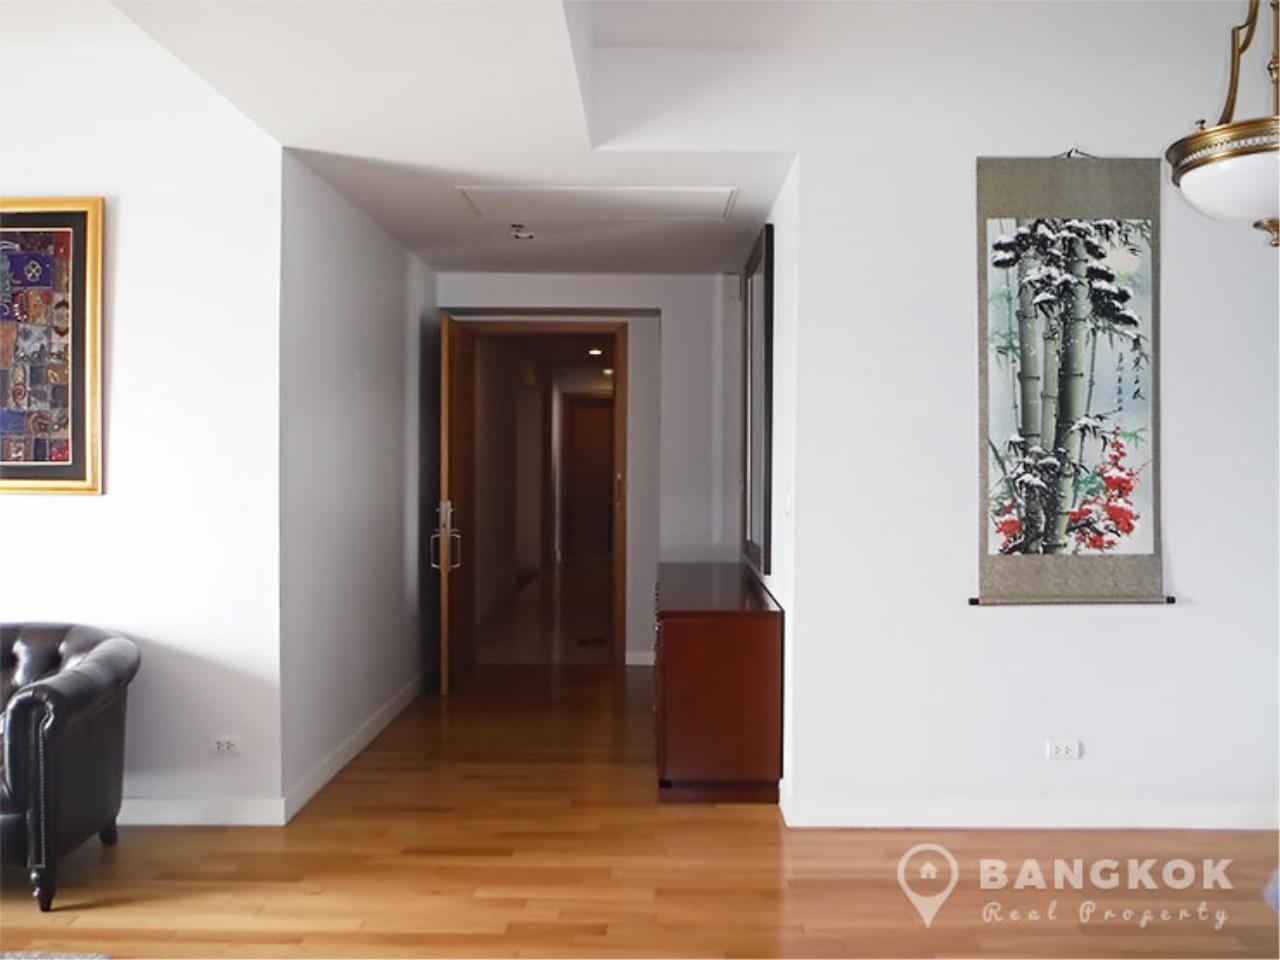 Bangkok Real Property Agency's Millennium Residence | Spacious Modern 3 Bed 3 Bath near Asoke 5